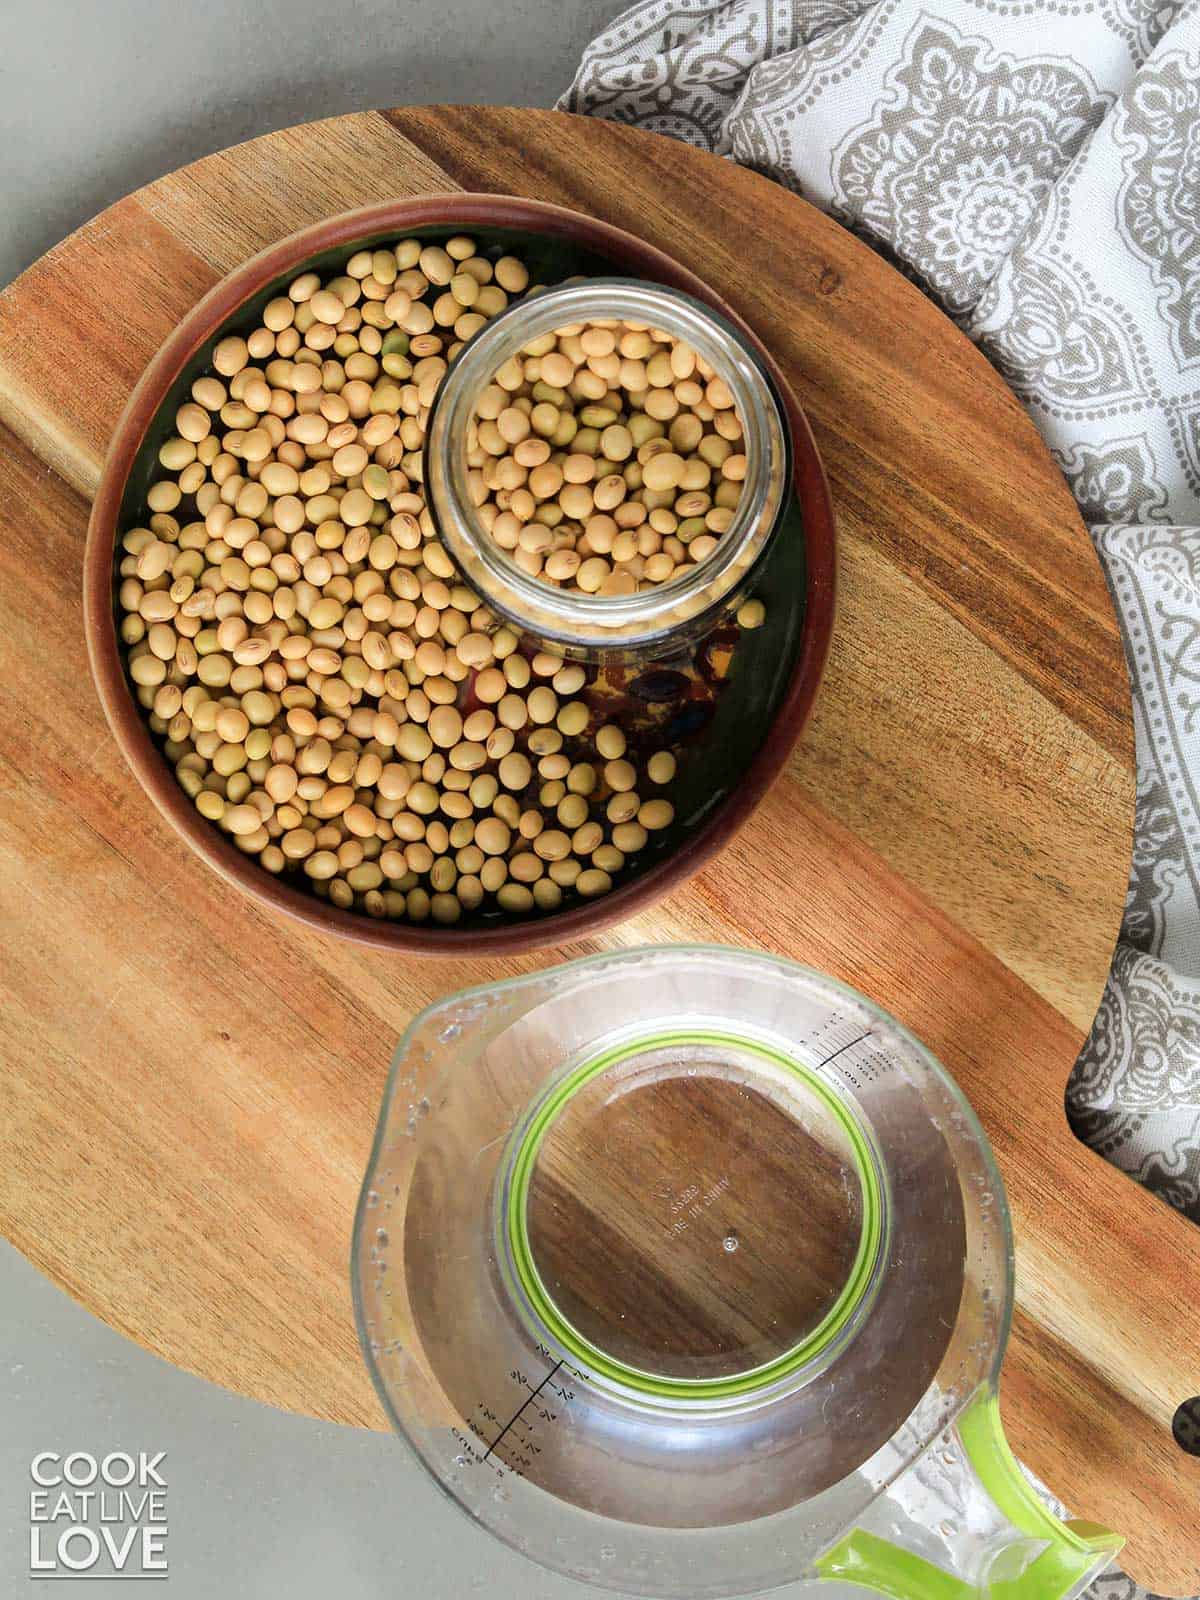 Dried soy beans and water to make soy milk at home